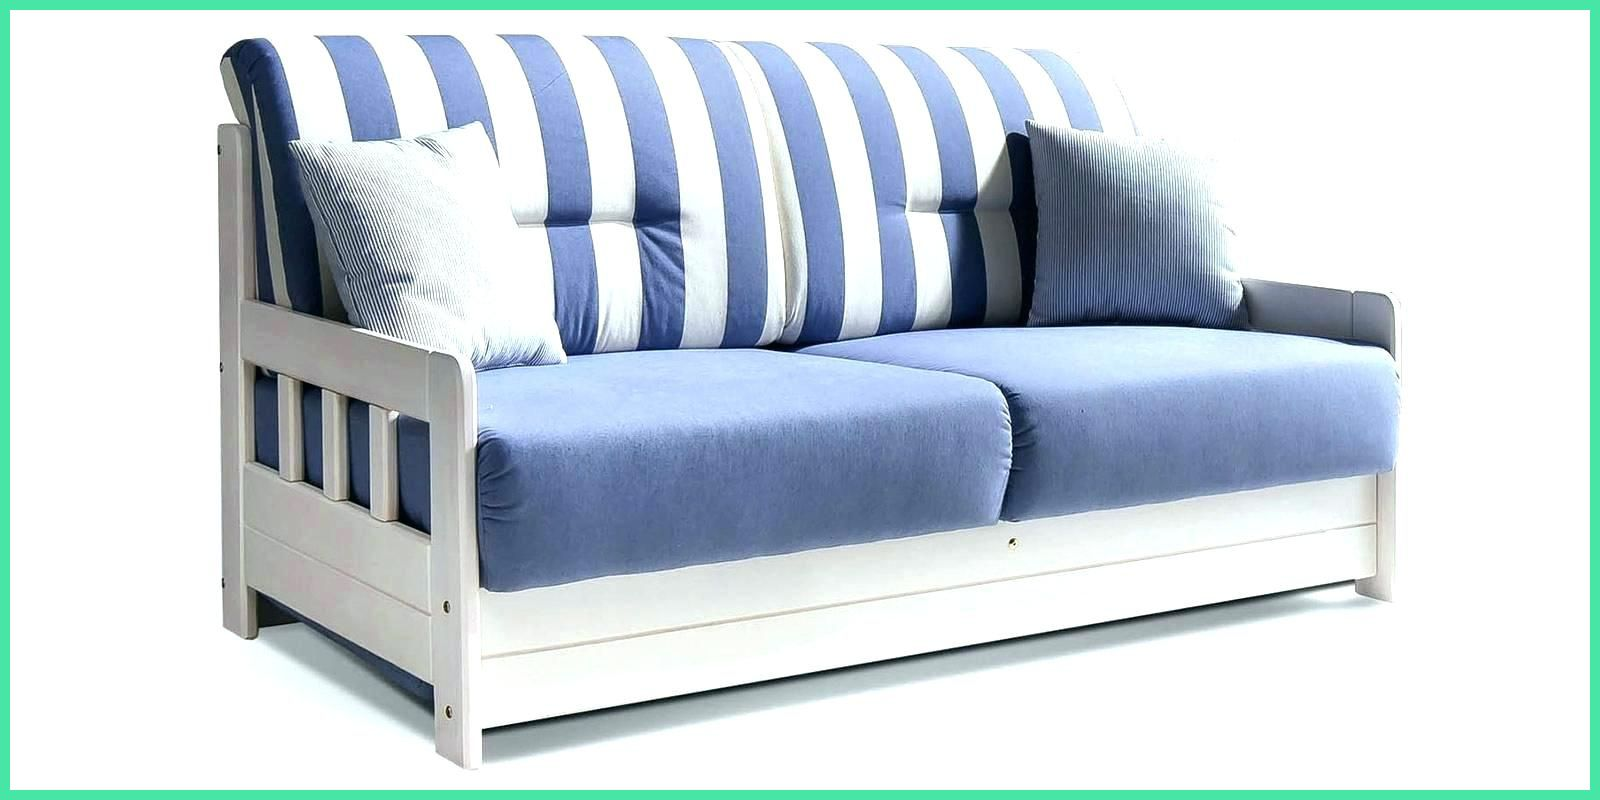 10 Authentisch Gunstige Schlafsofas Unter 100 Euro In 2020 Couch Sofa Sofa Couch